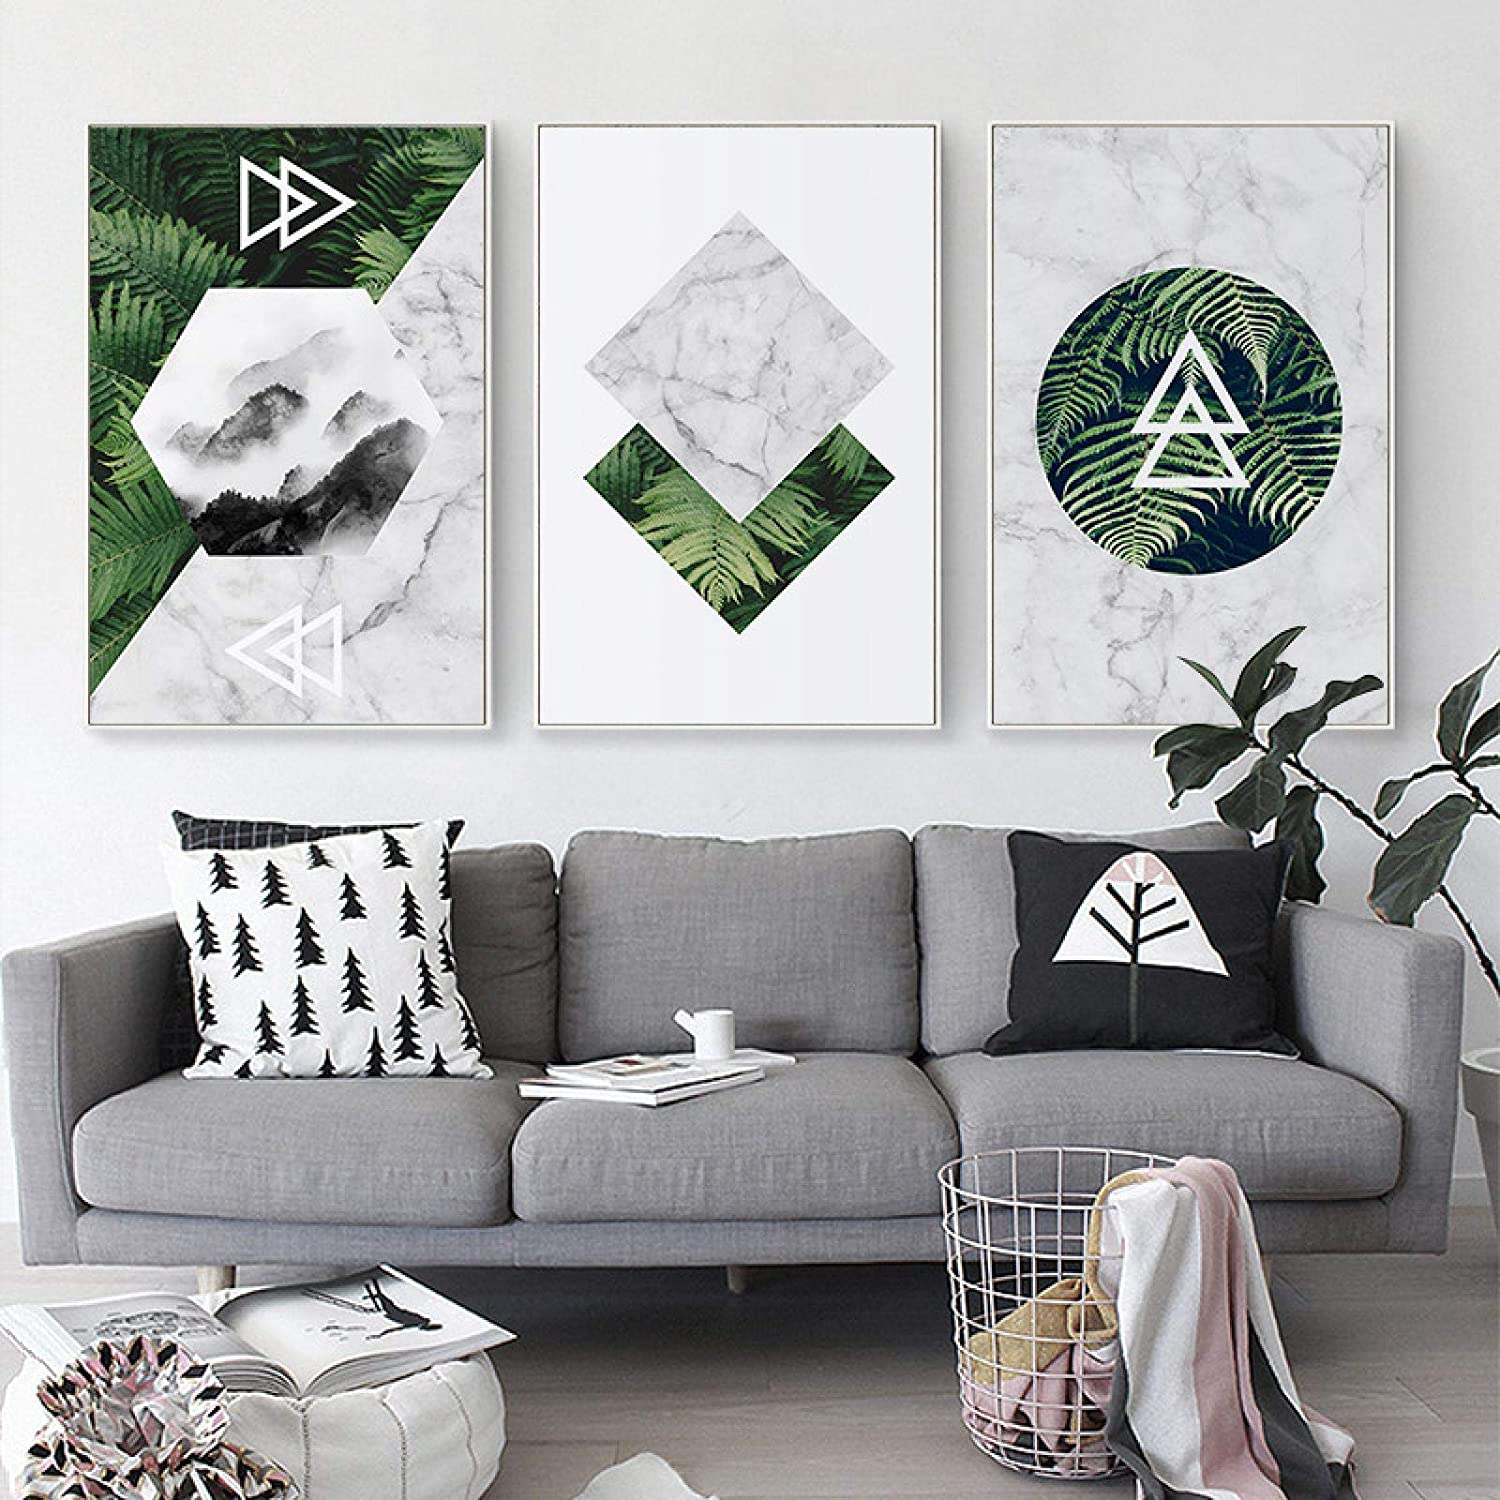 """YQLKC Canvas Paintings Nordic Geometric Green Leaves Landscape Marble Posters and Prints Wall Art Pictures Living Room Decor 15.7""""x23.6""""(40x60cm) 3pcs Frameless"""